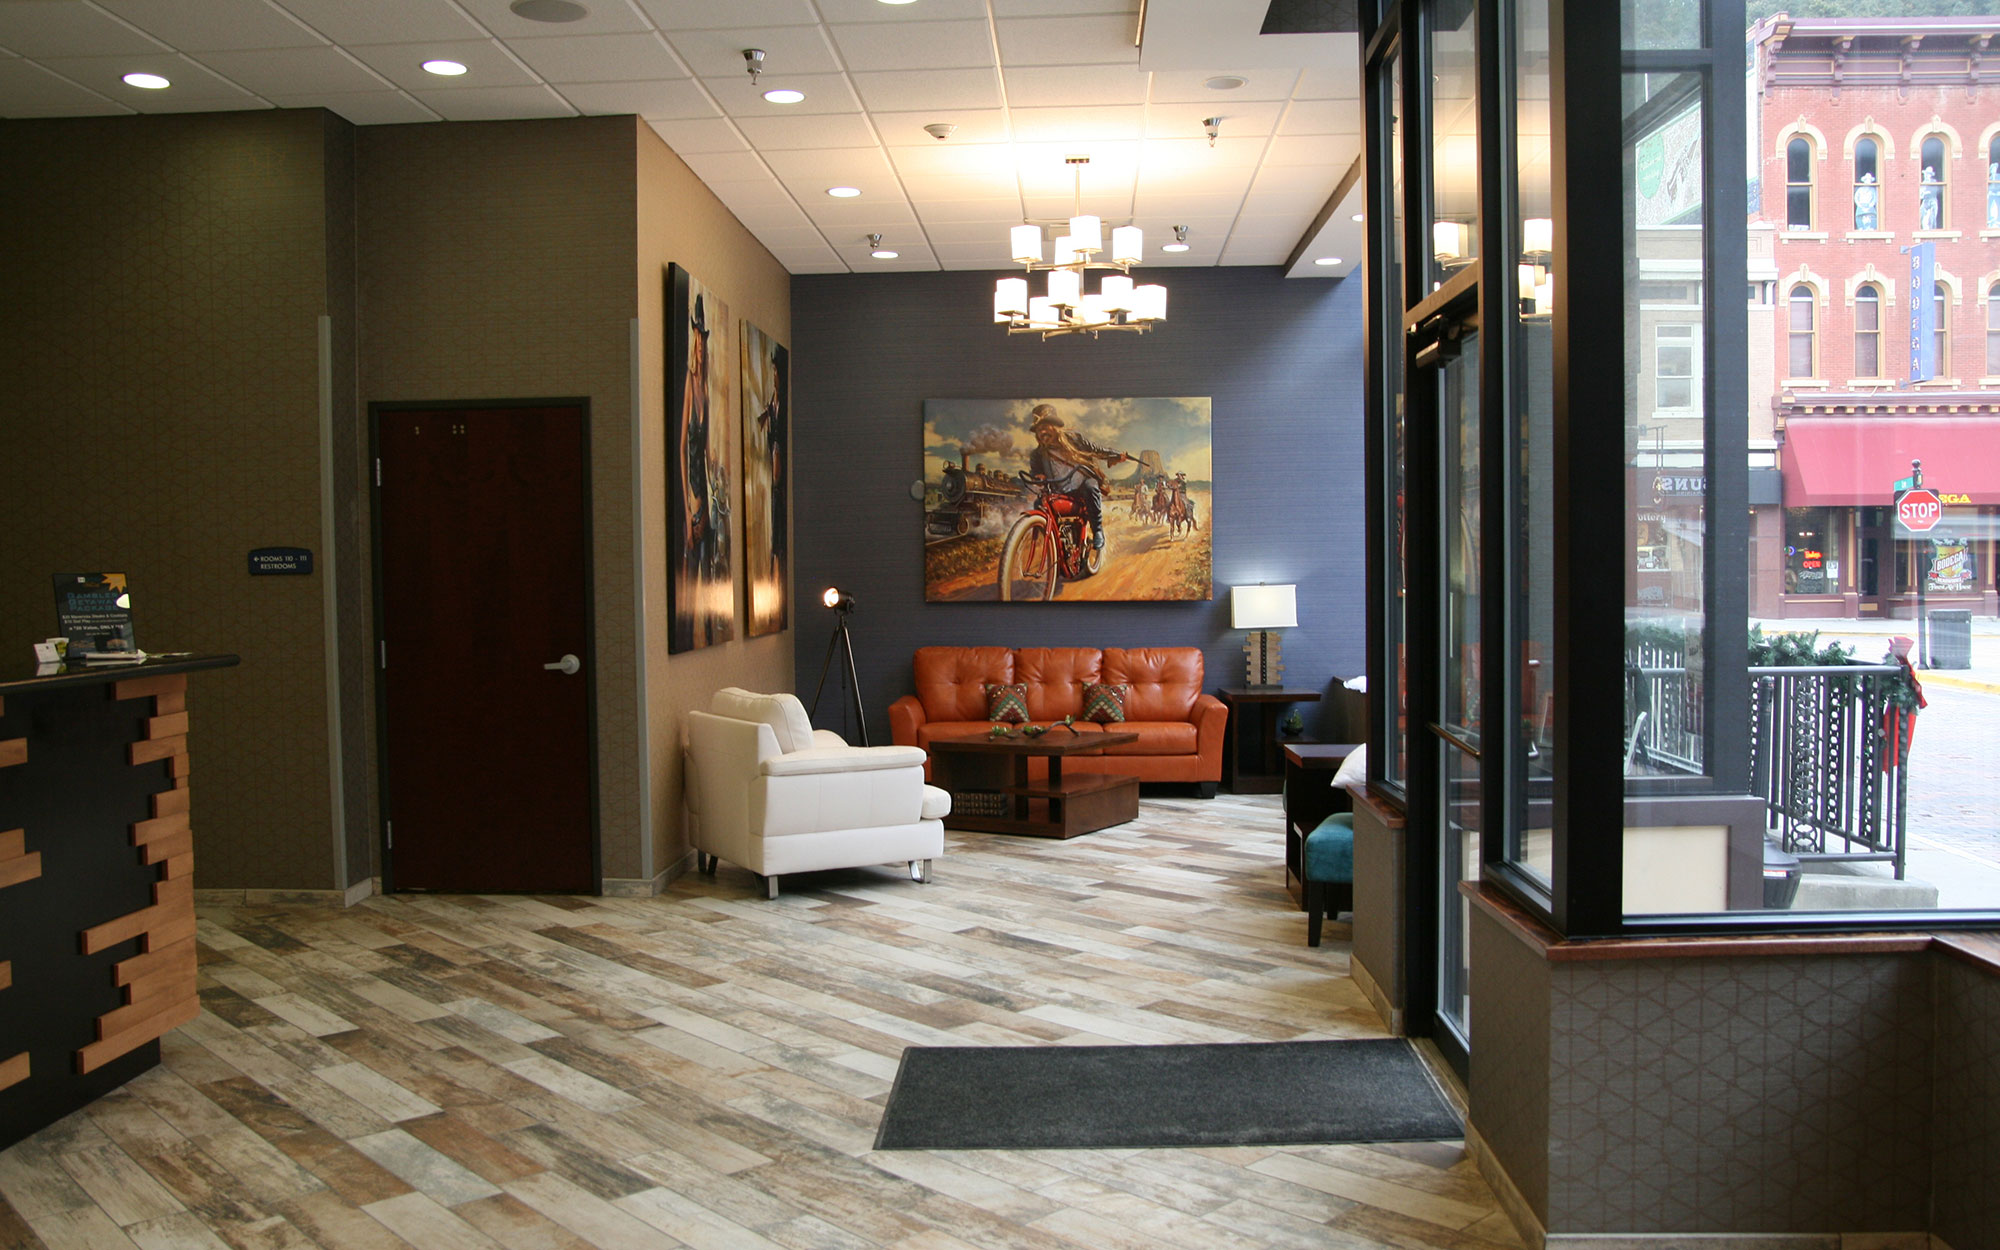 South Dakota: The Hotel by Gold Dust